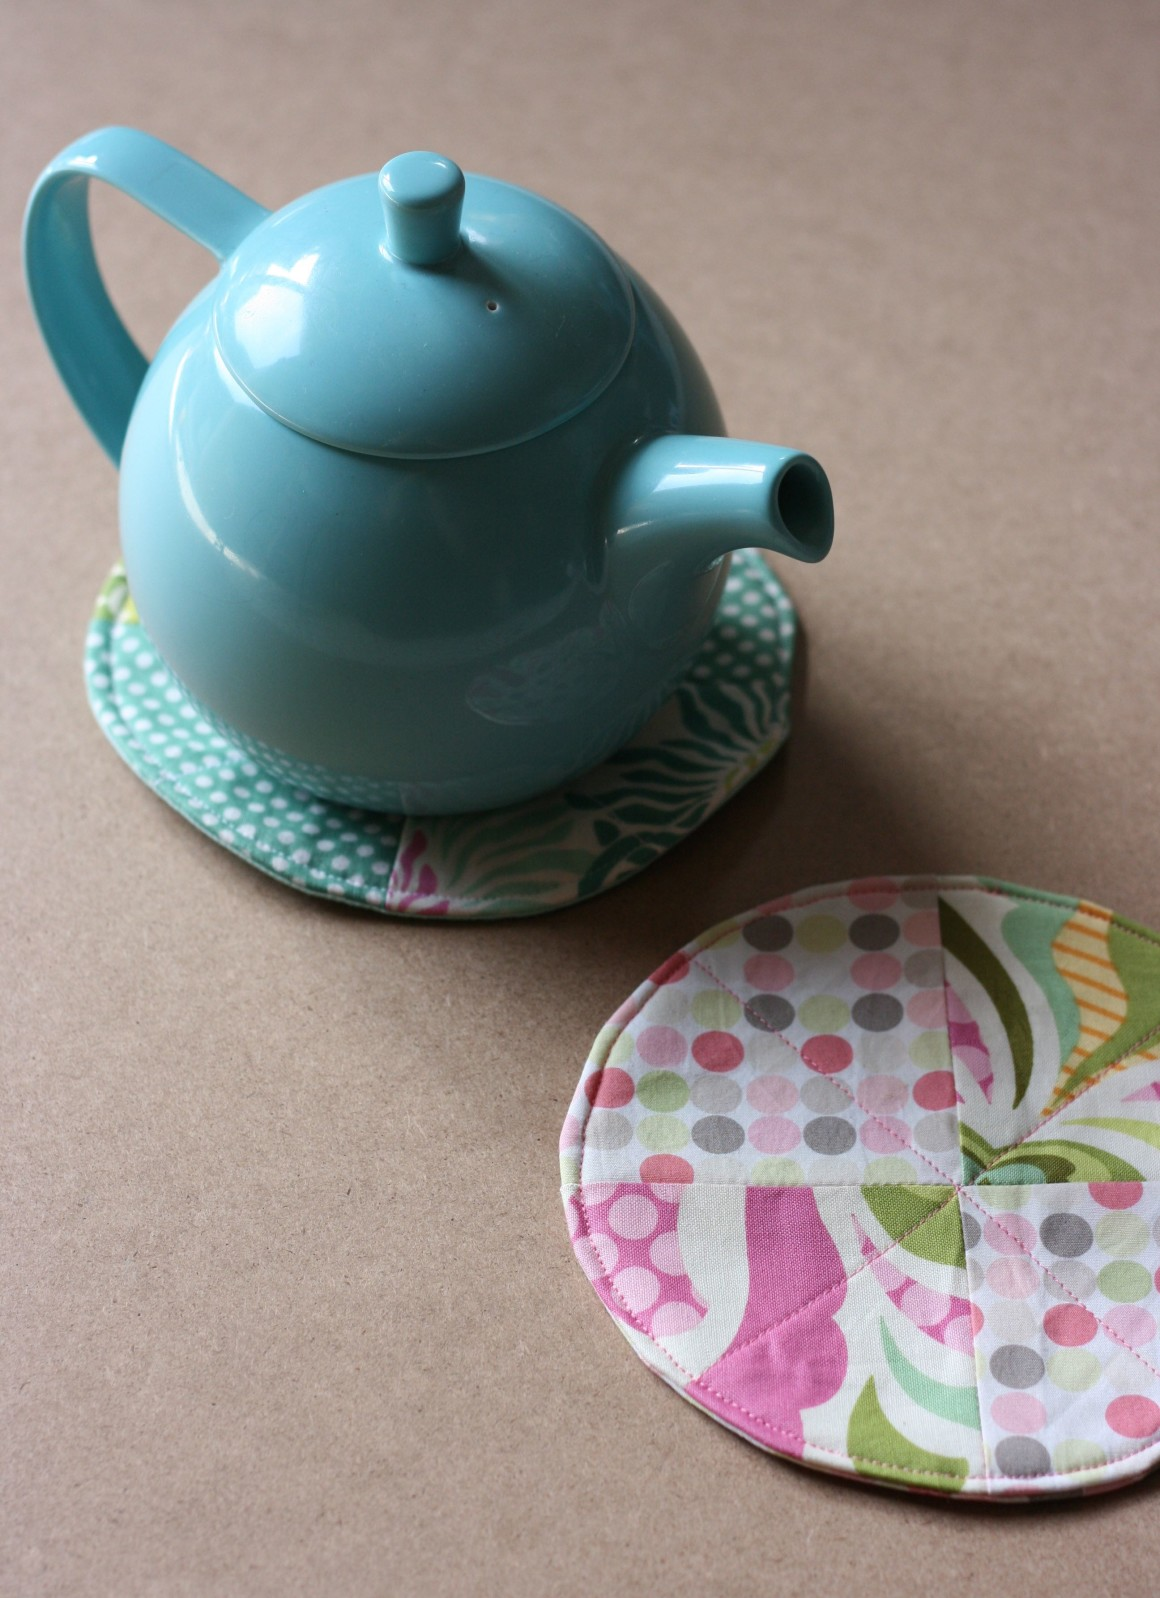 Fabric Scrap Teacup Coaster A Fabulous 30 Minute Sewing Project To Use Up Fabric Scraps